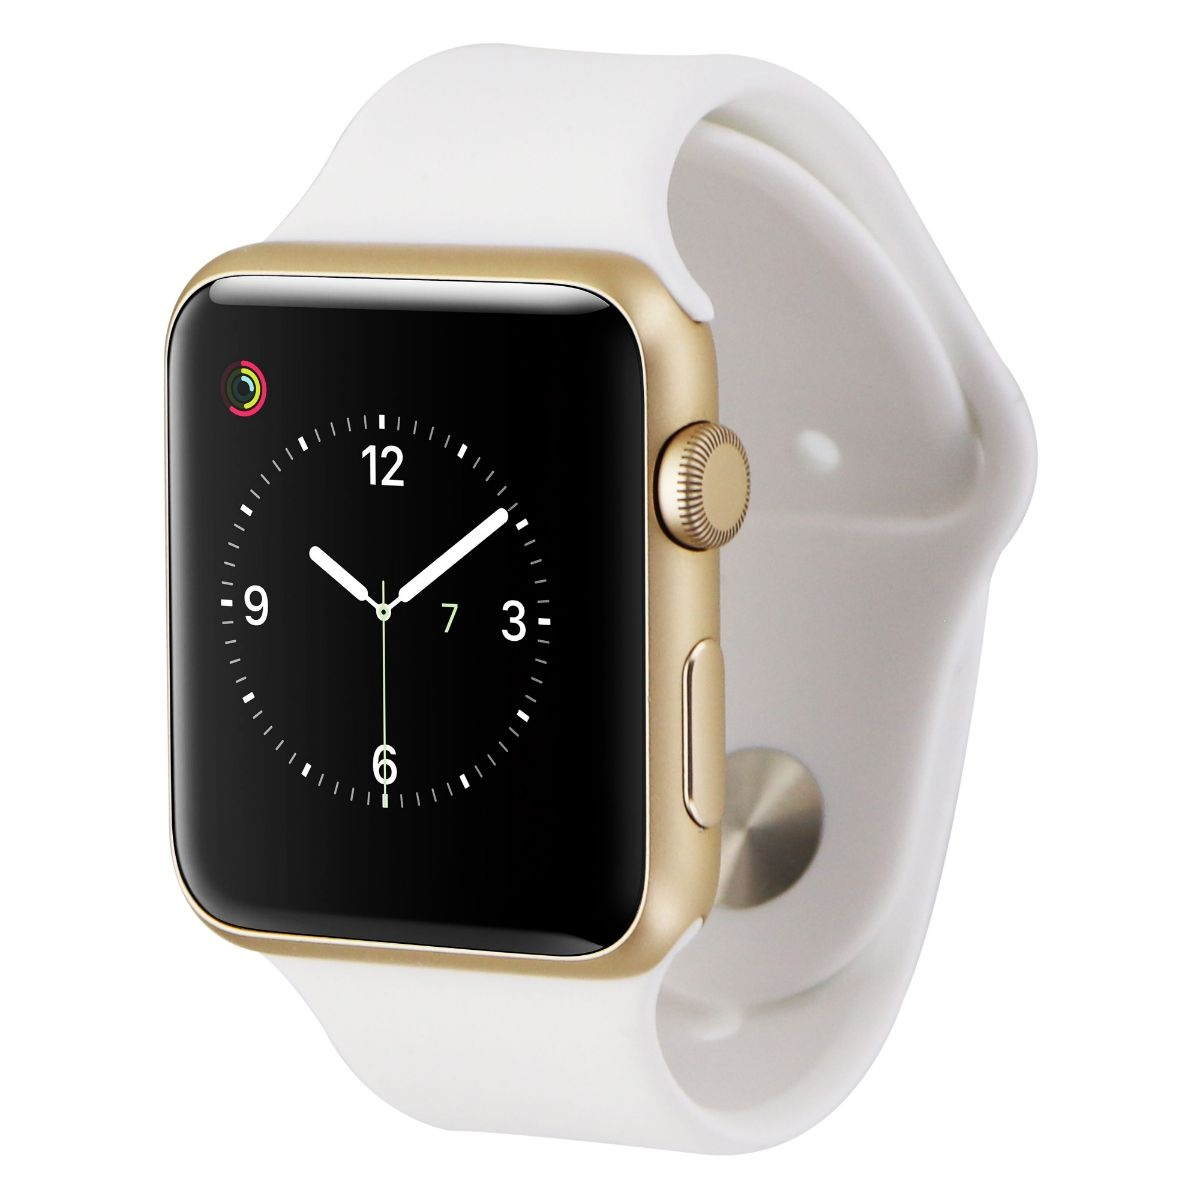 Apple Watch Series 1 (42mm) A1803 - Gold Aluminum / White Band